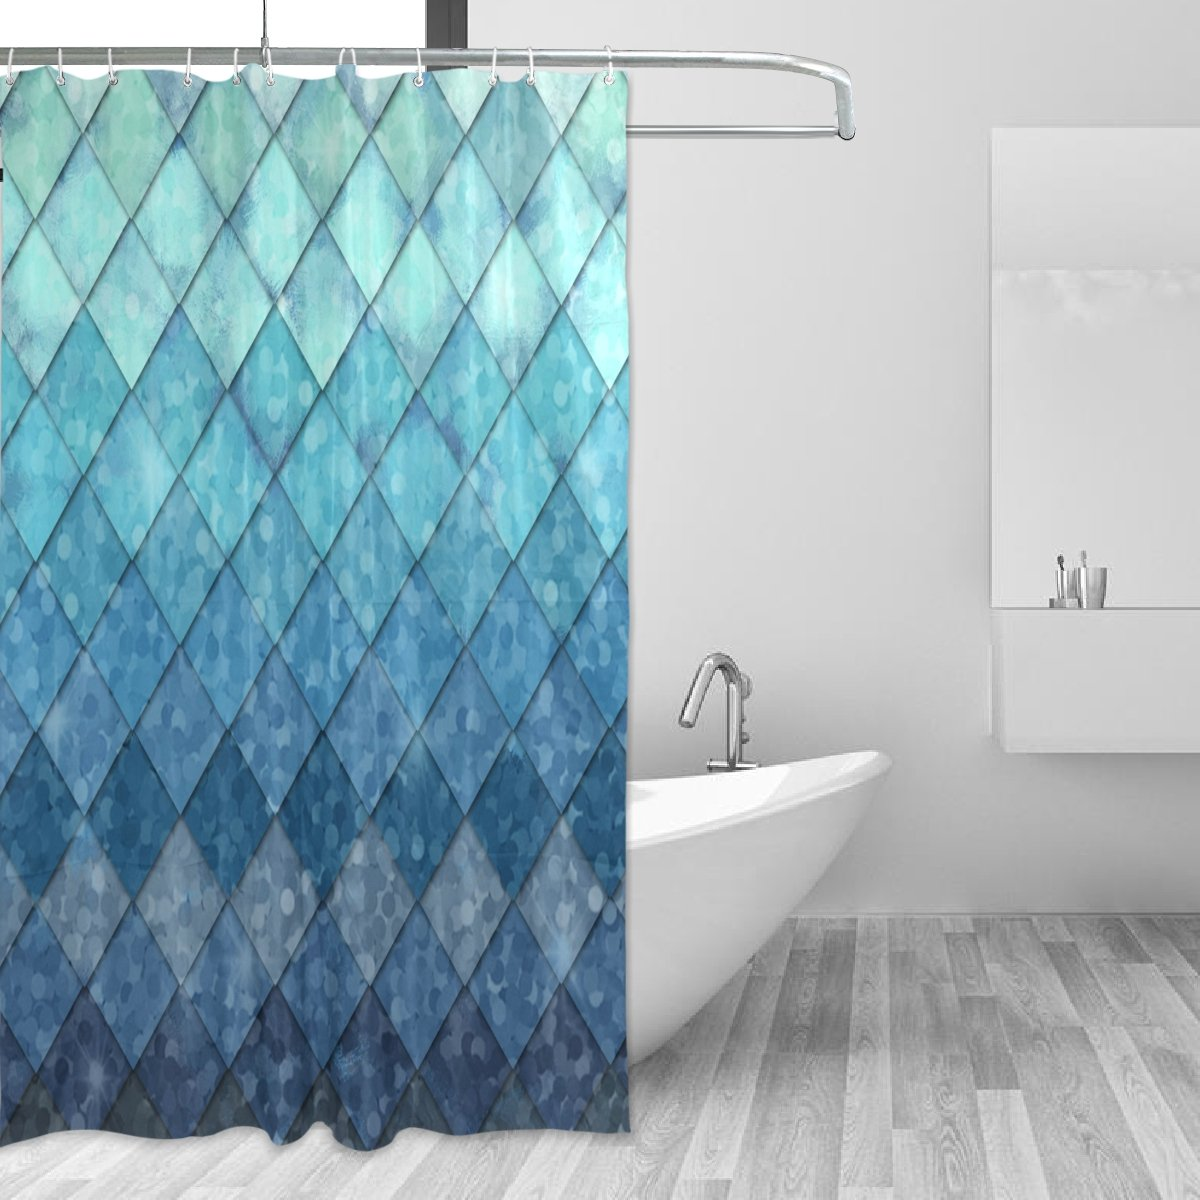 Amazon.com: ALAZA Shower Curtain Backdrop Royal Blue Mermaid Scales ...